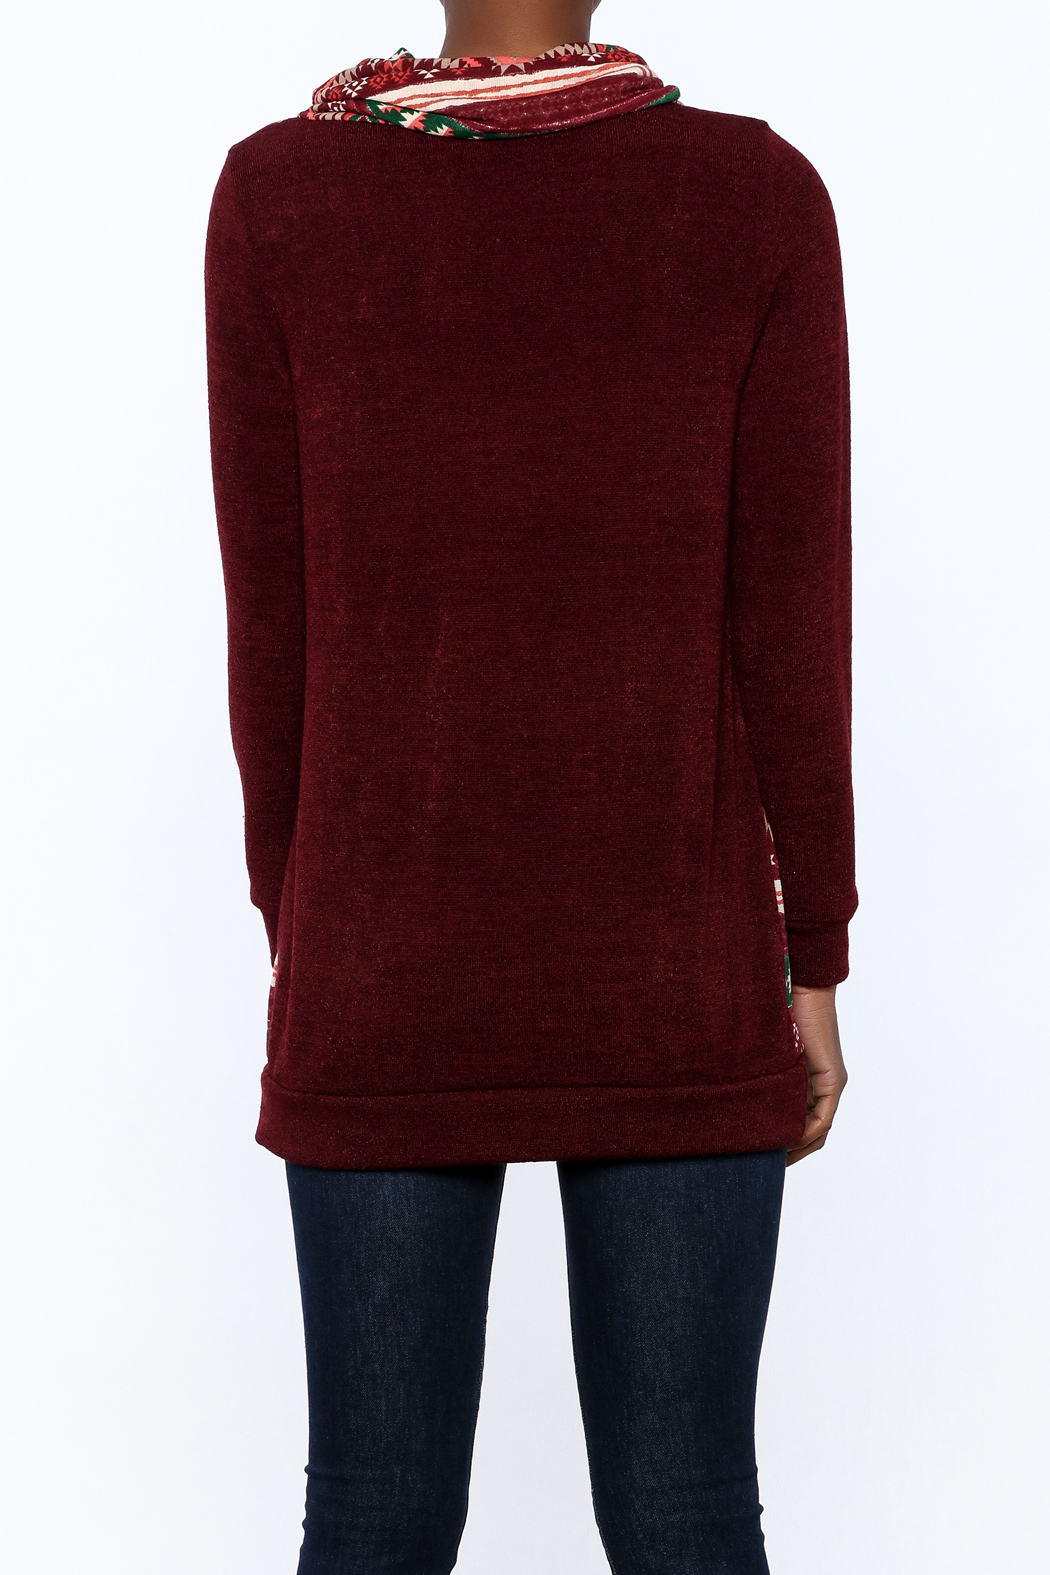 Twenty Second Burgundy Tribal Hoodie from Minnesota by Bela Va ...